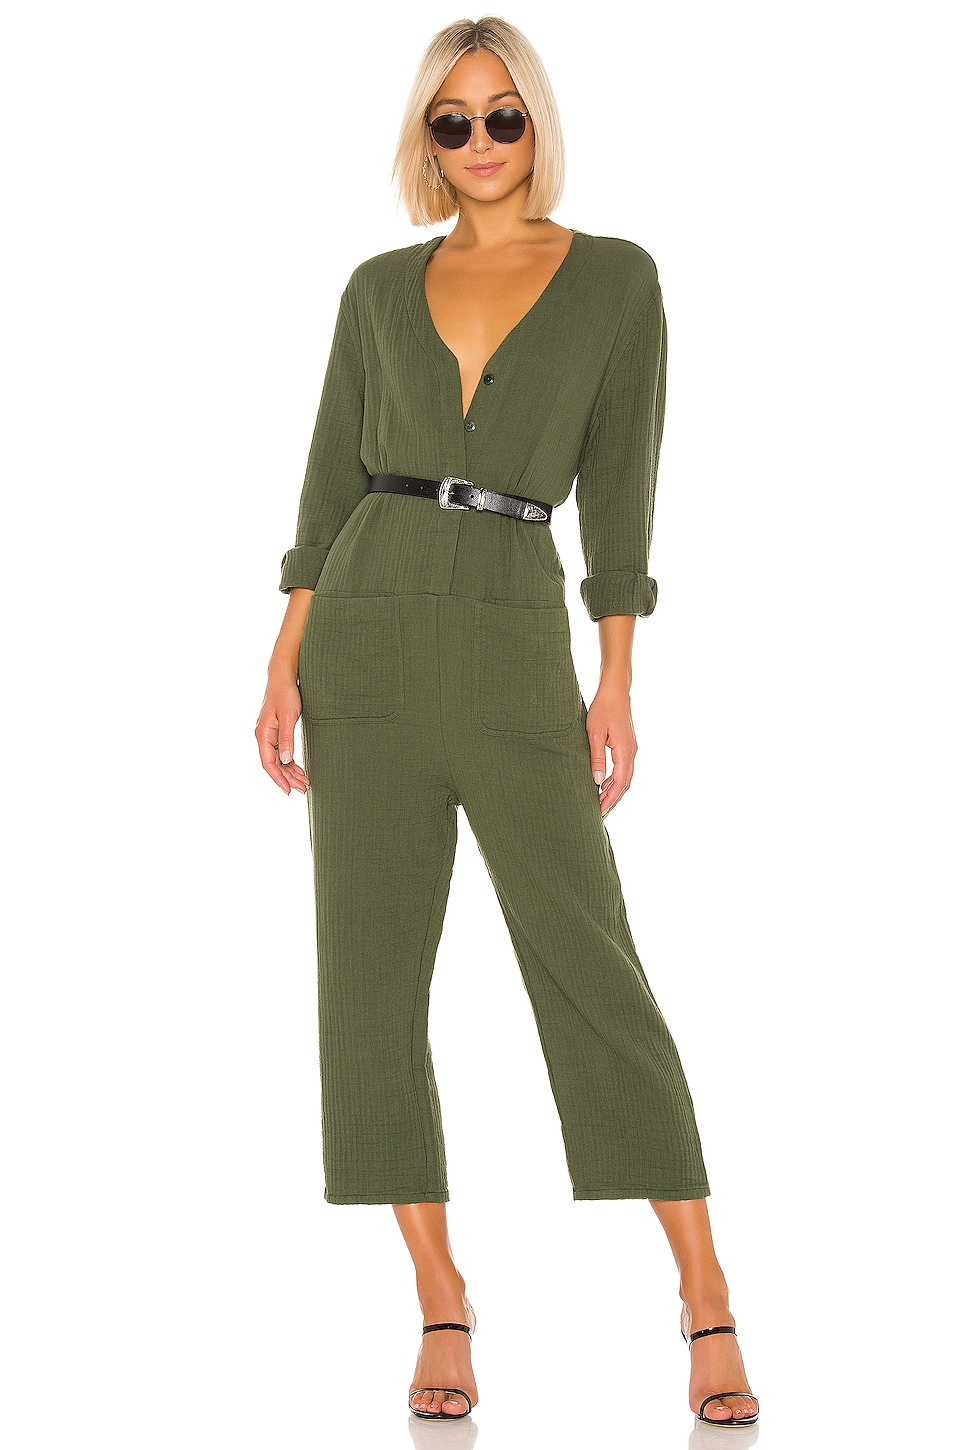 The Great Union Coverall in Olive